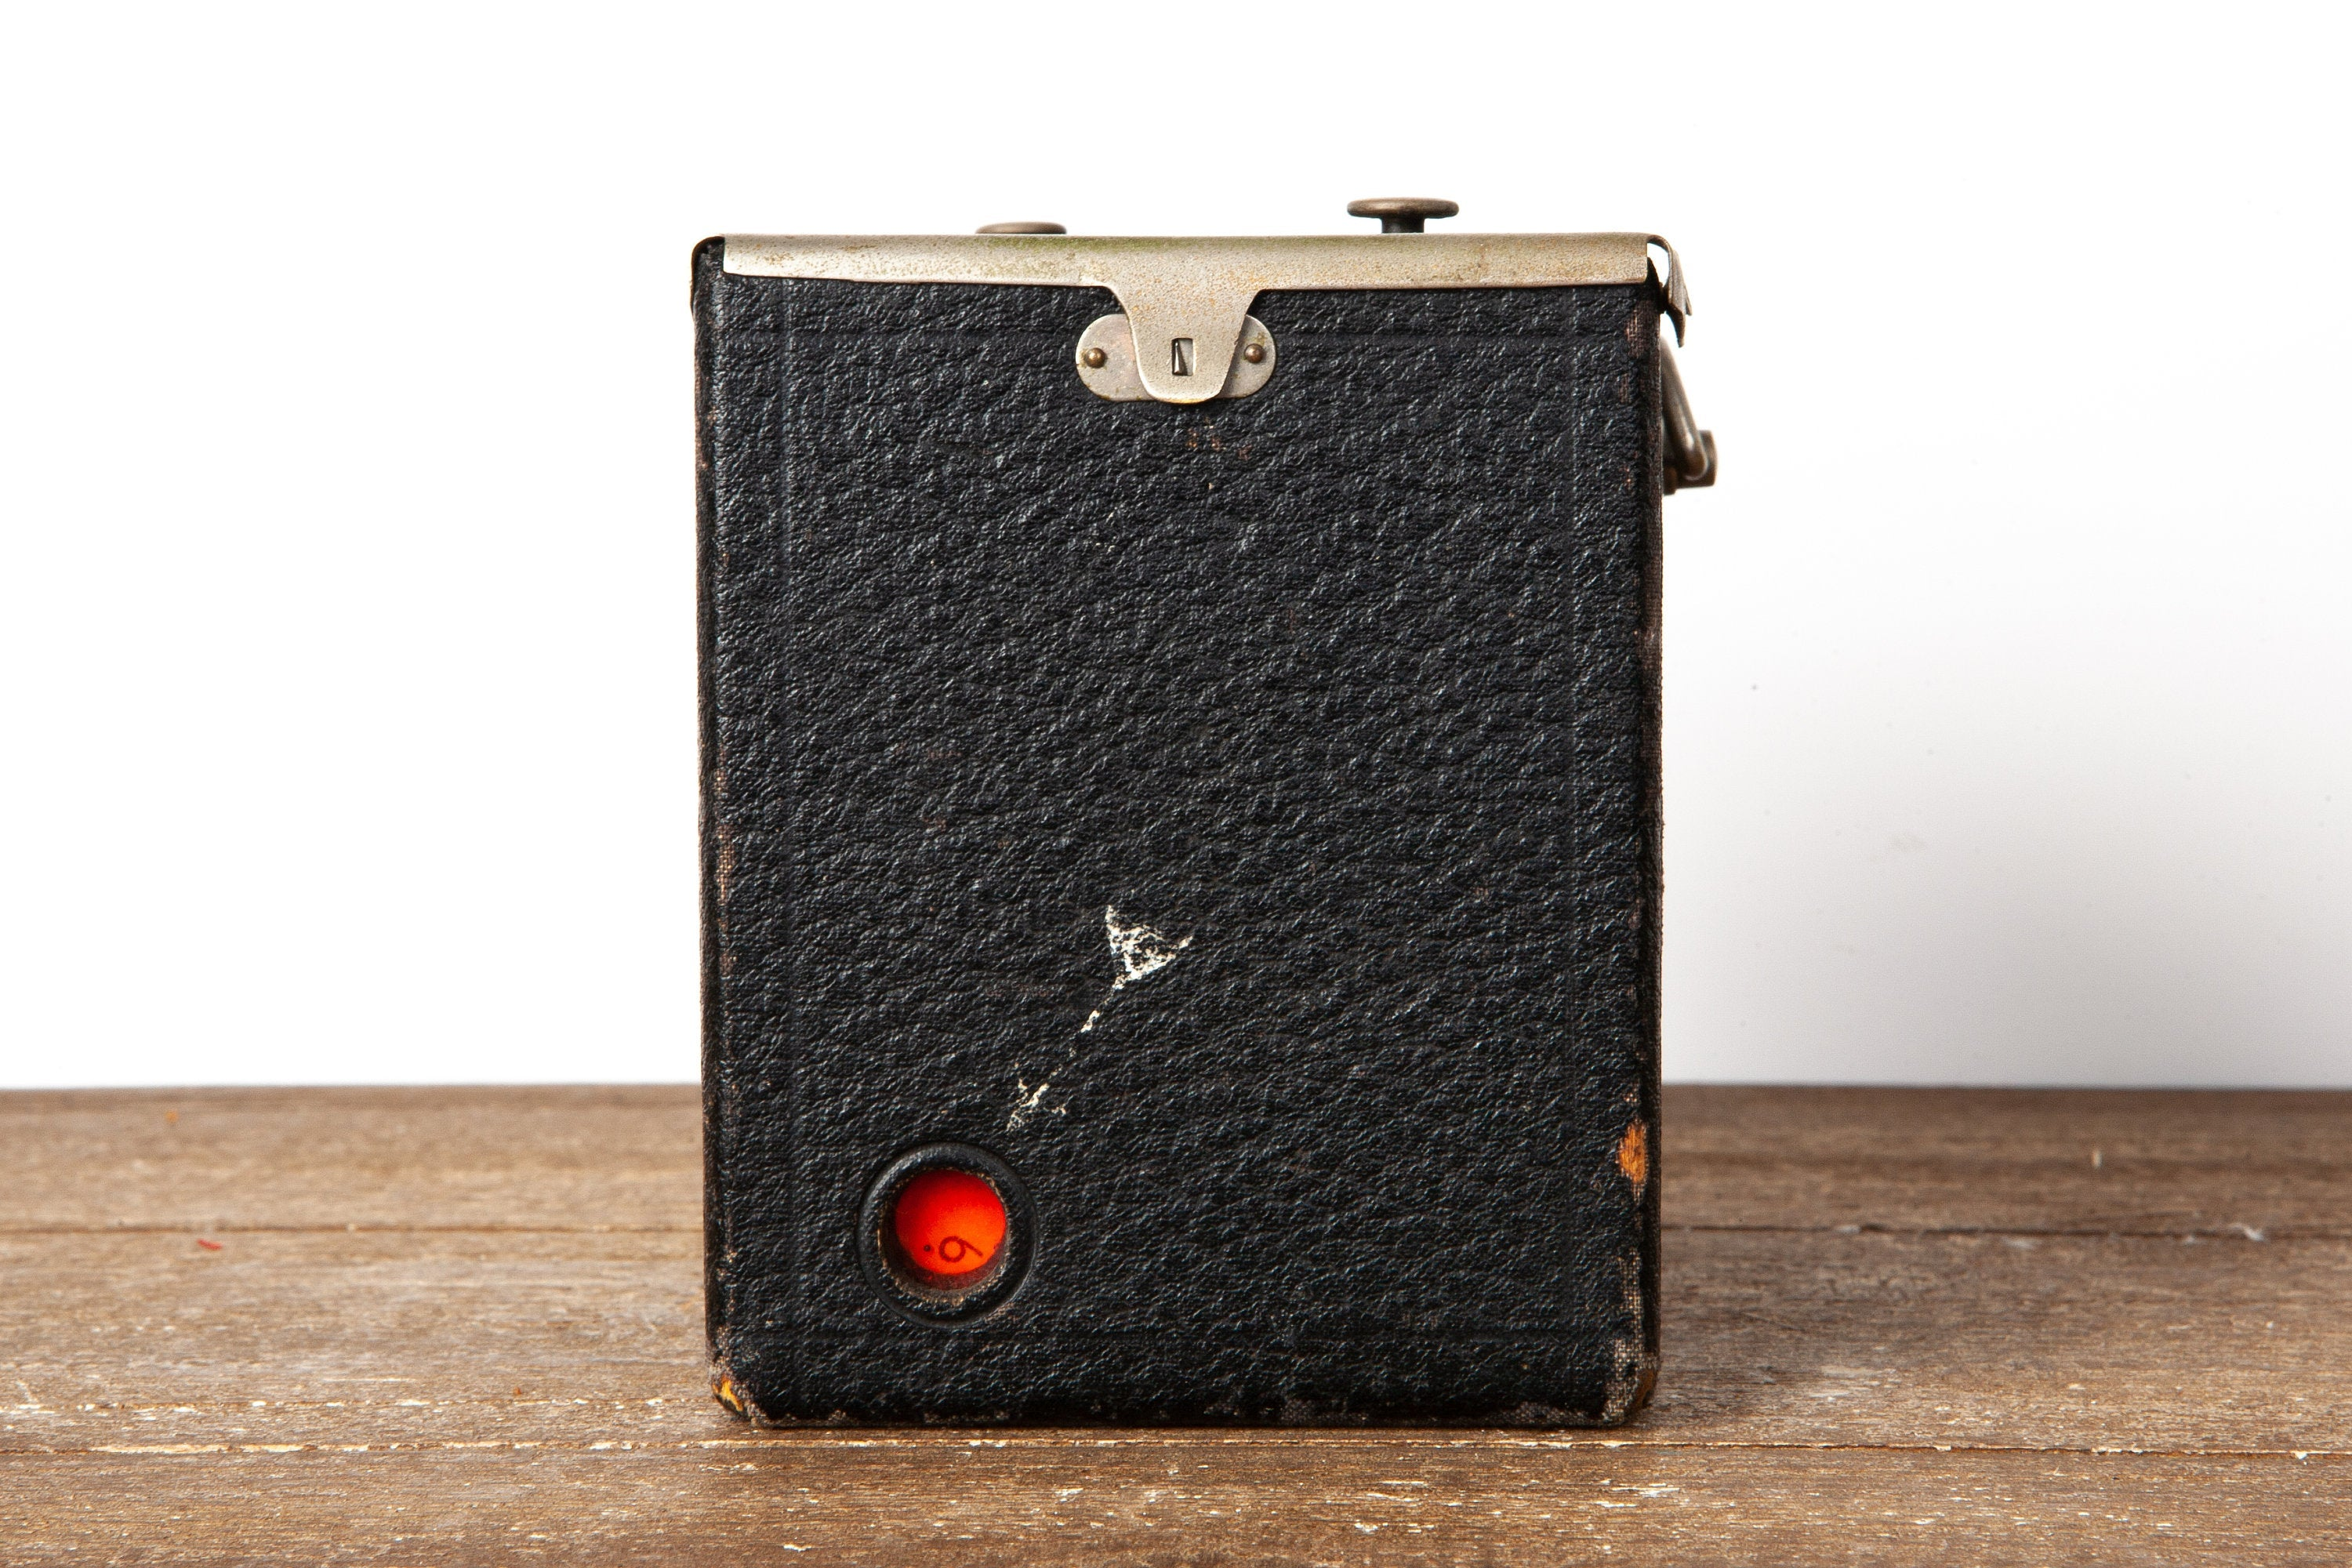 coolvintagecameras - Brownie Box Medium Format Film Camera from 1906 - CoolVintageCameras - Camera